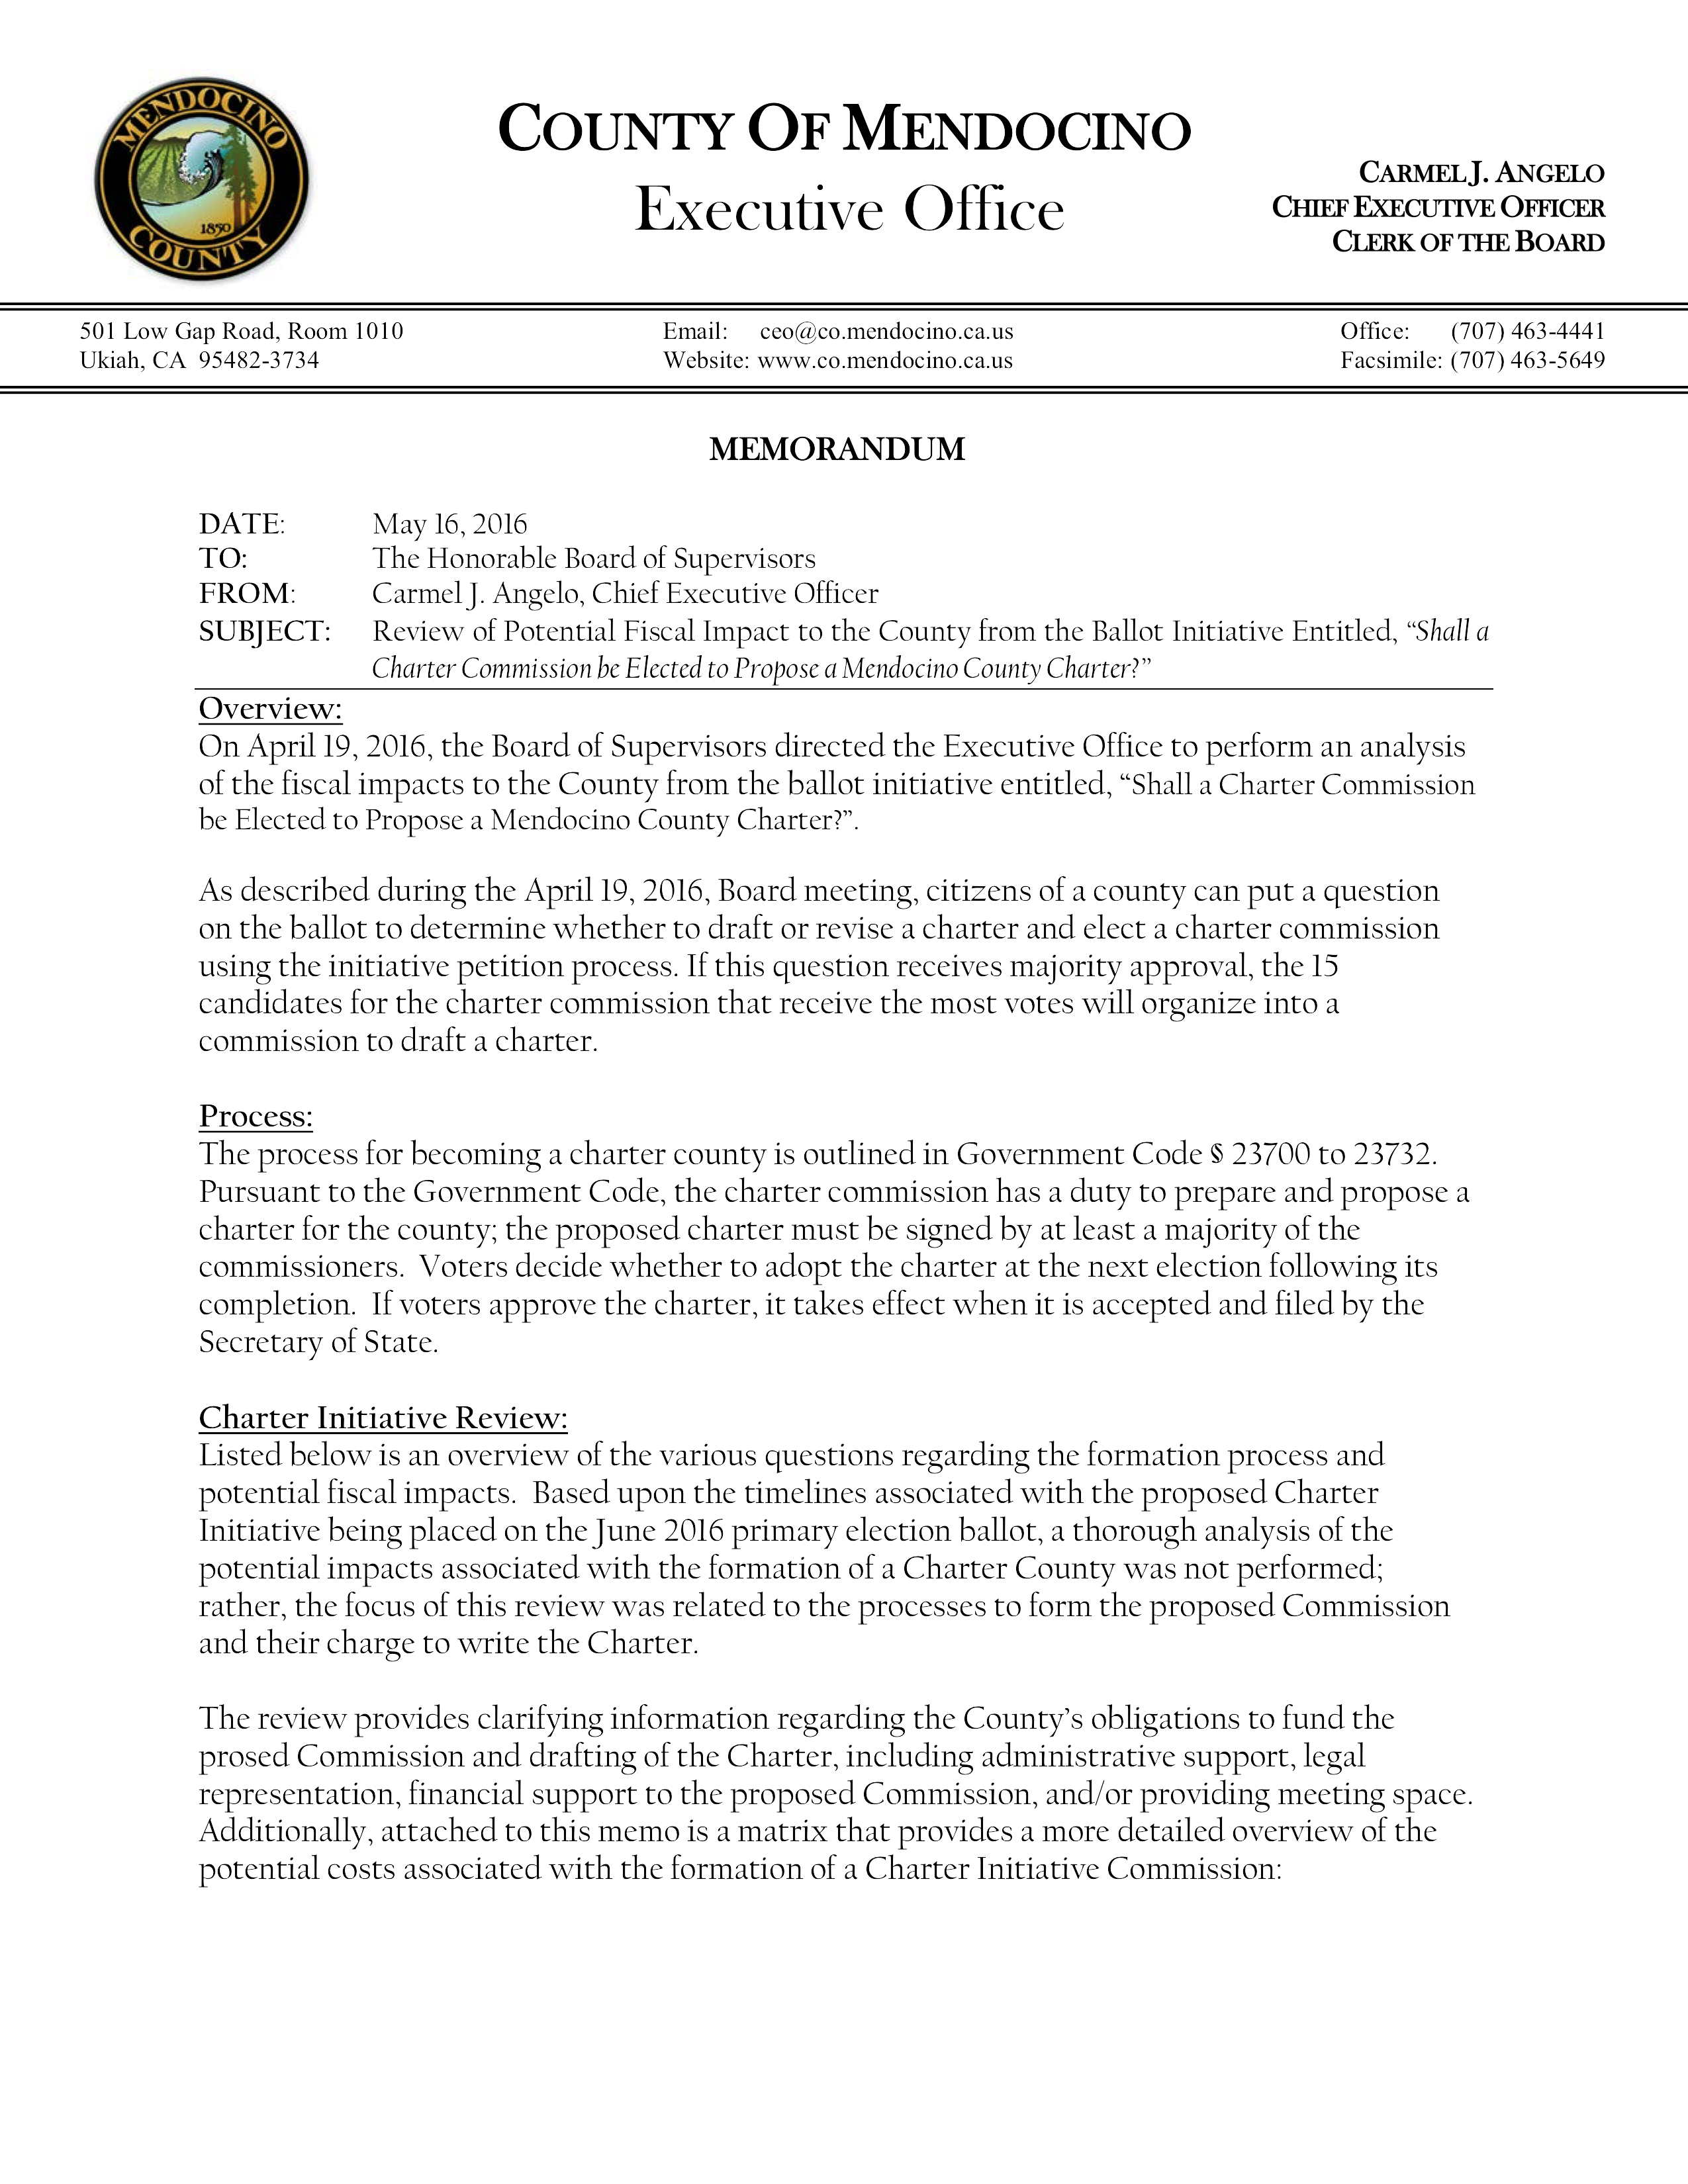 16-05-16 Potential Fiscal Impact of Measure W - P.1